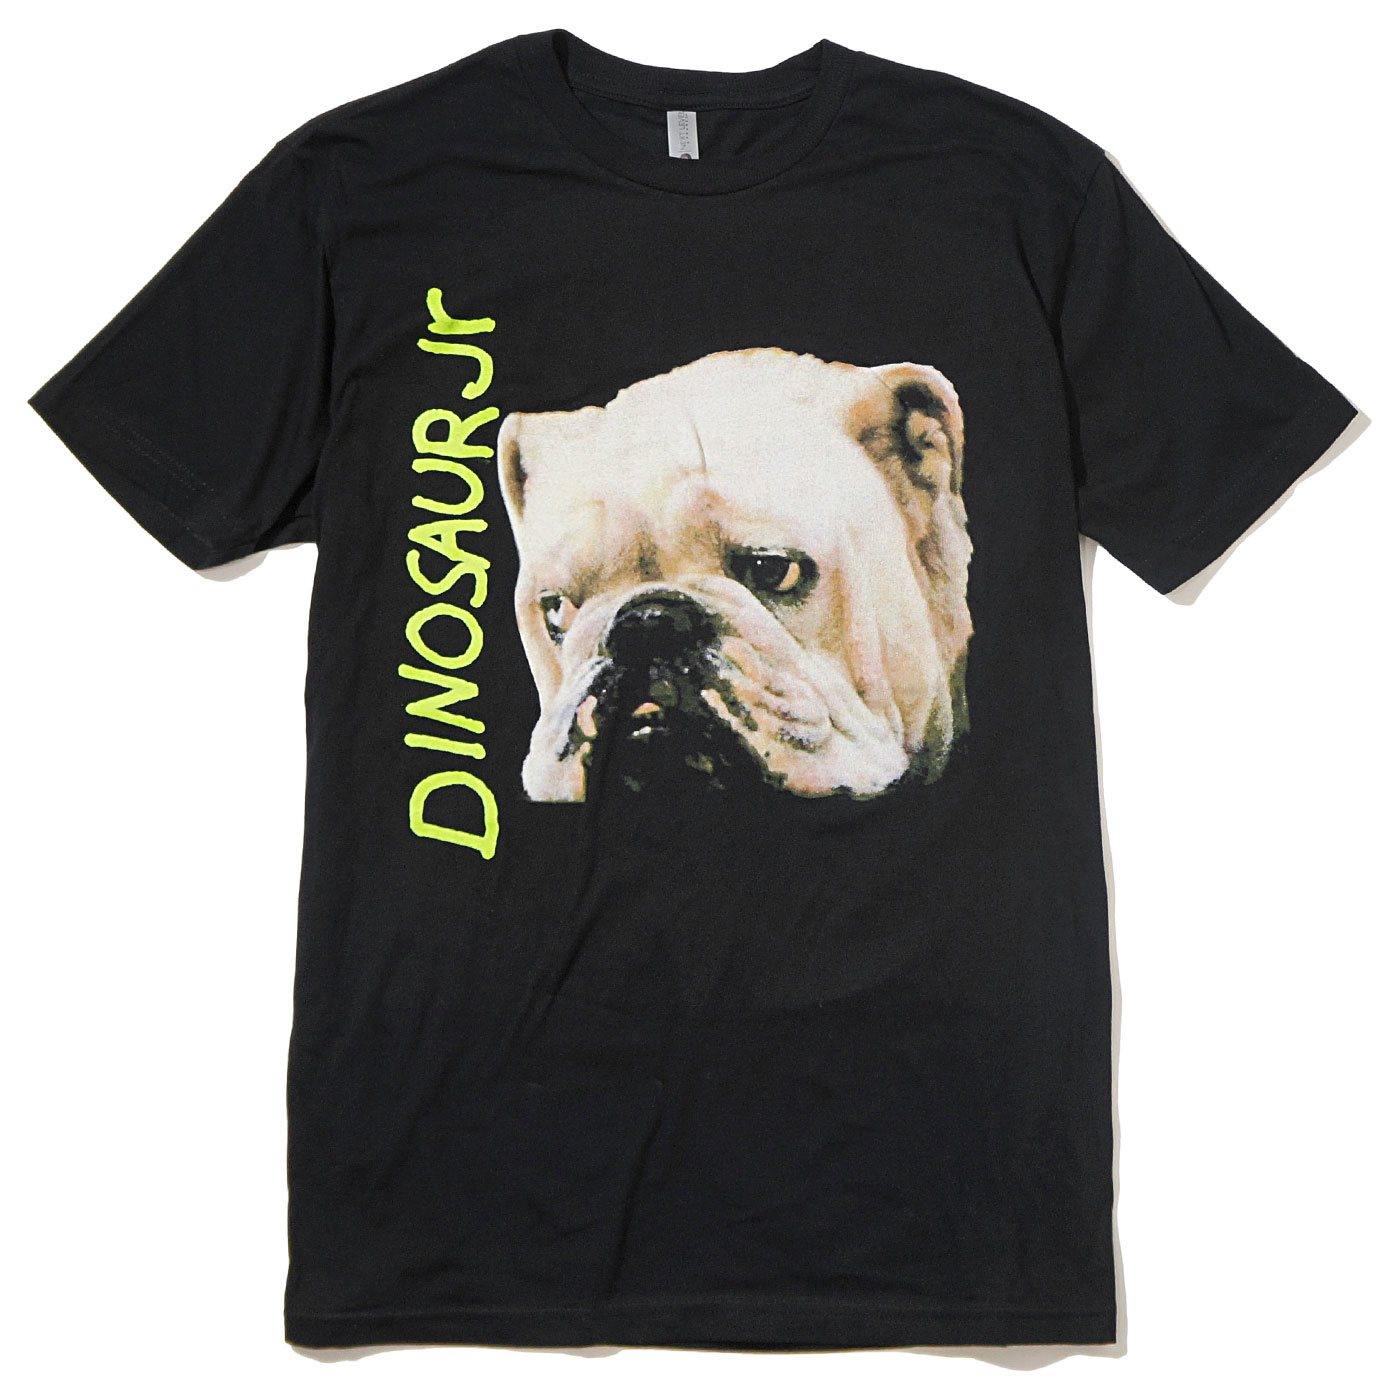 DINOSAUR Jr. Tシャツ Whatever's Cool With Me-Black